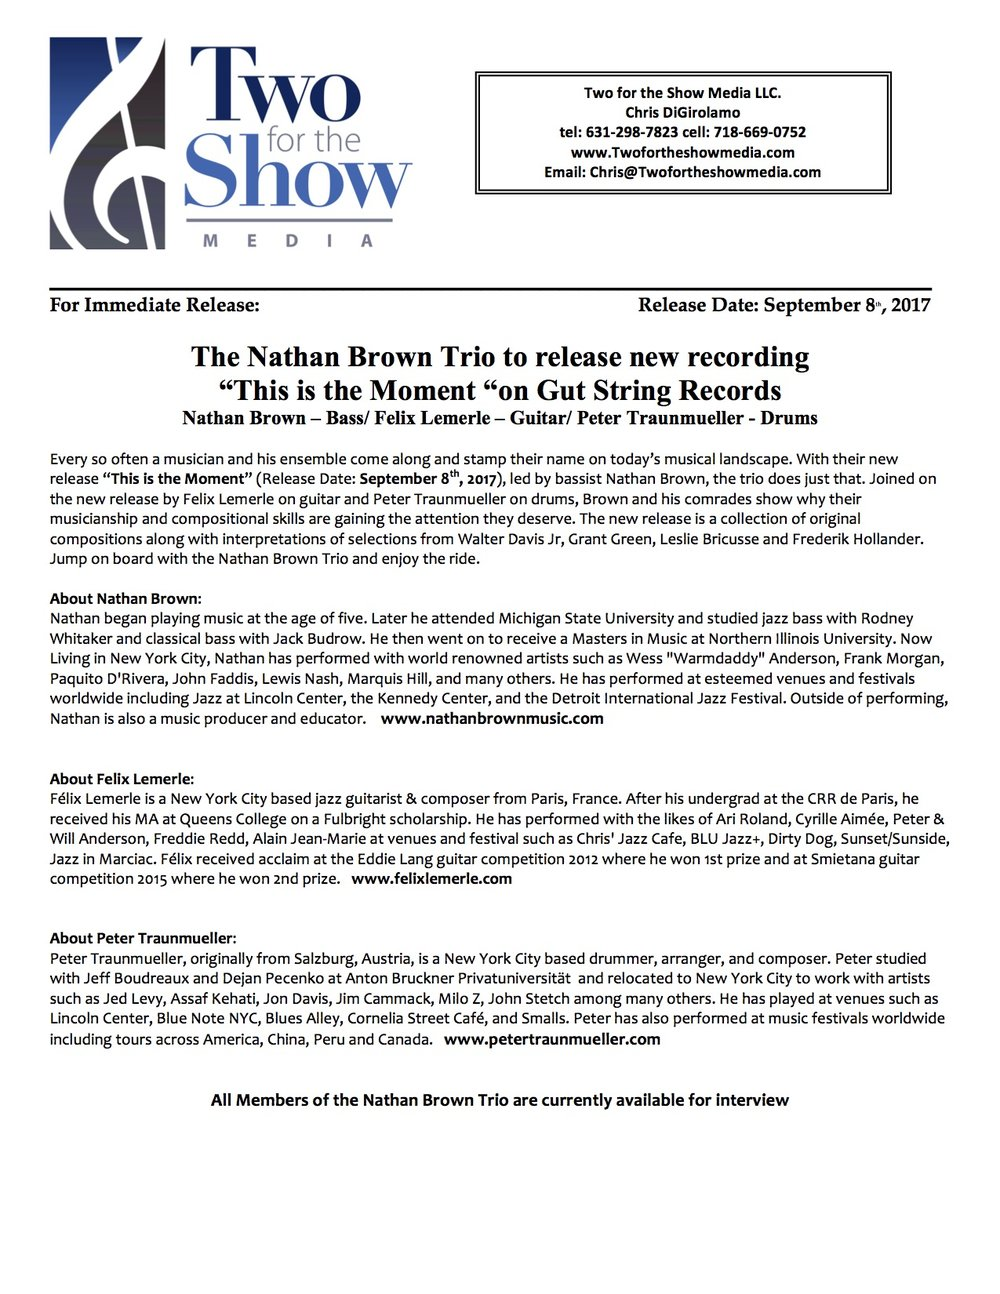 Nathan Brown Trio Press Sheet.jpg